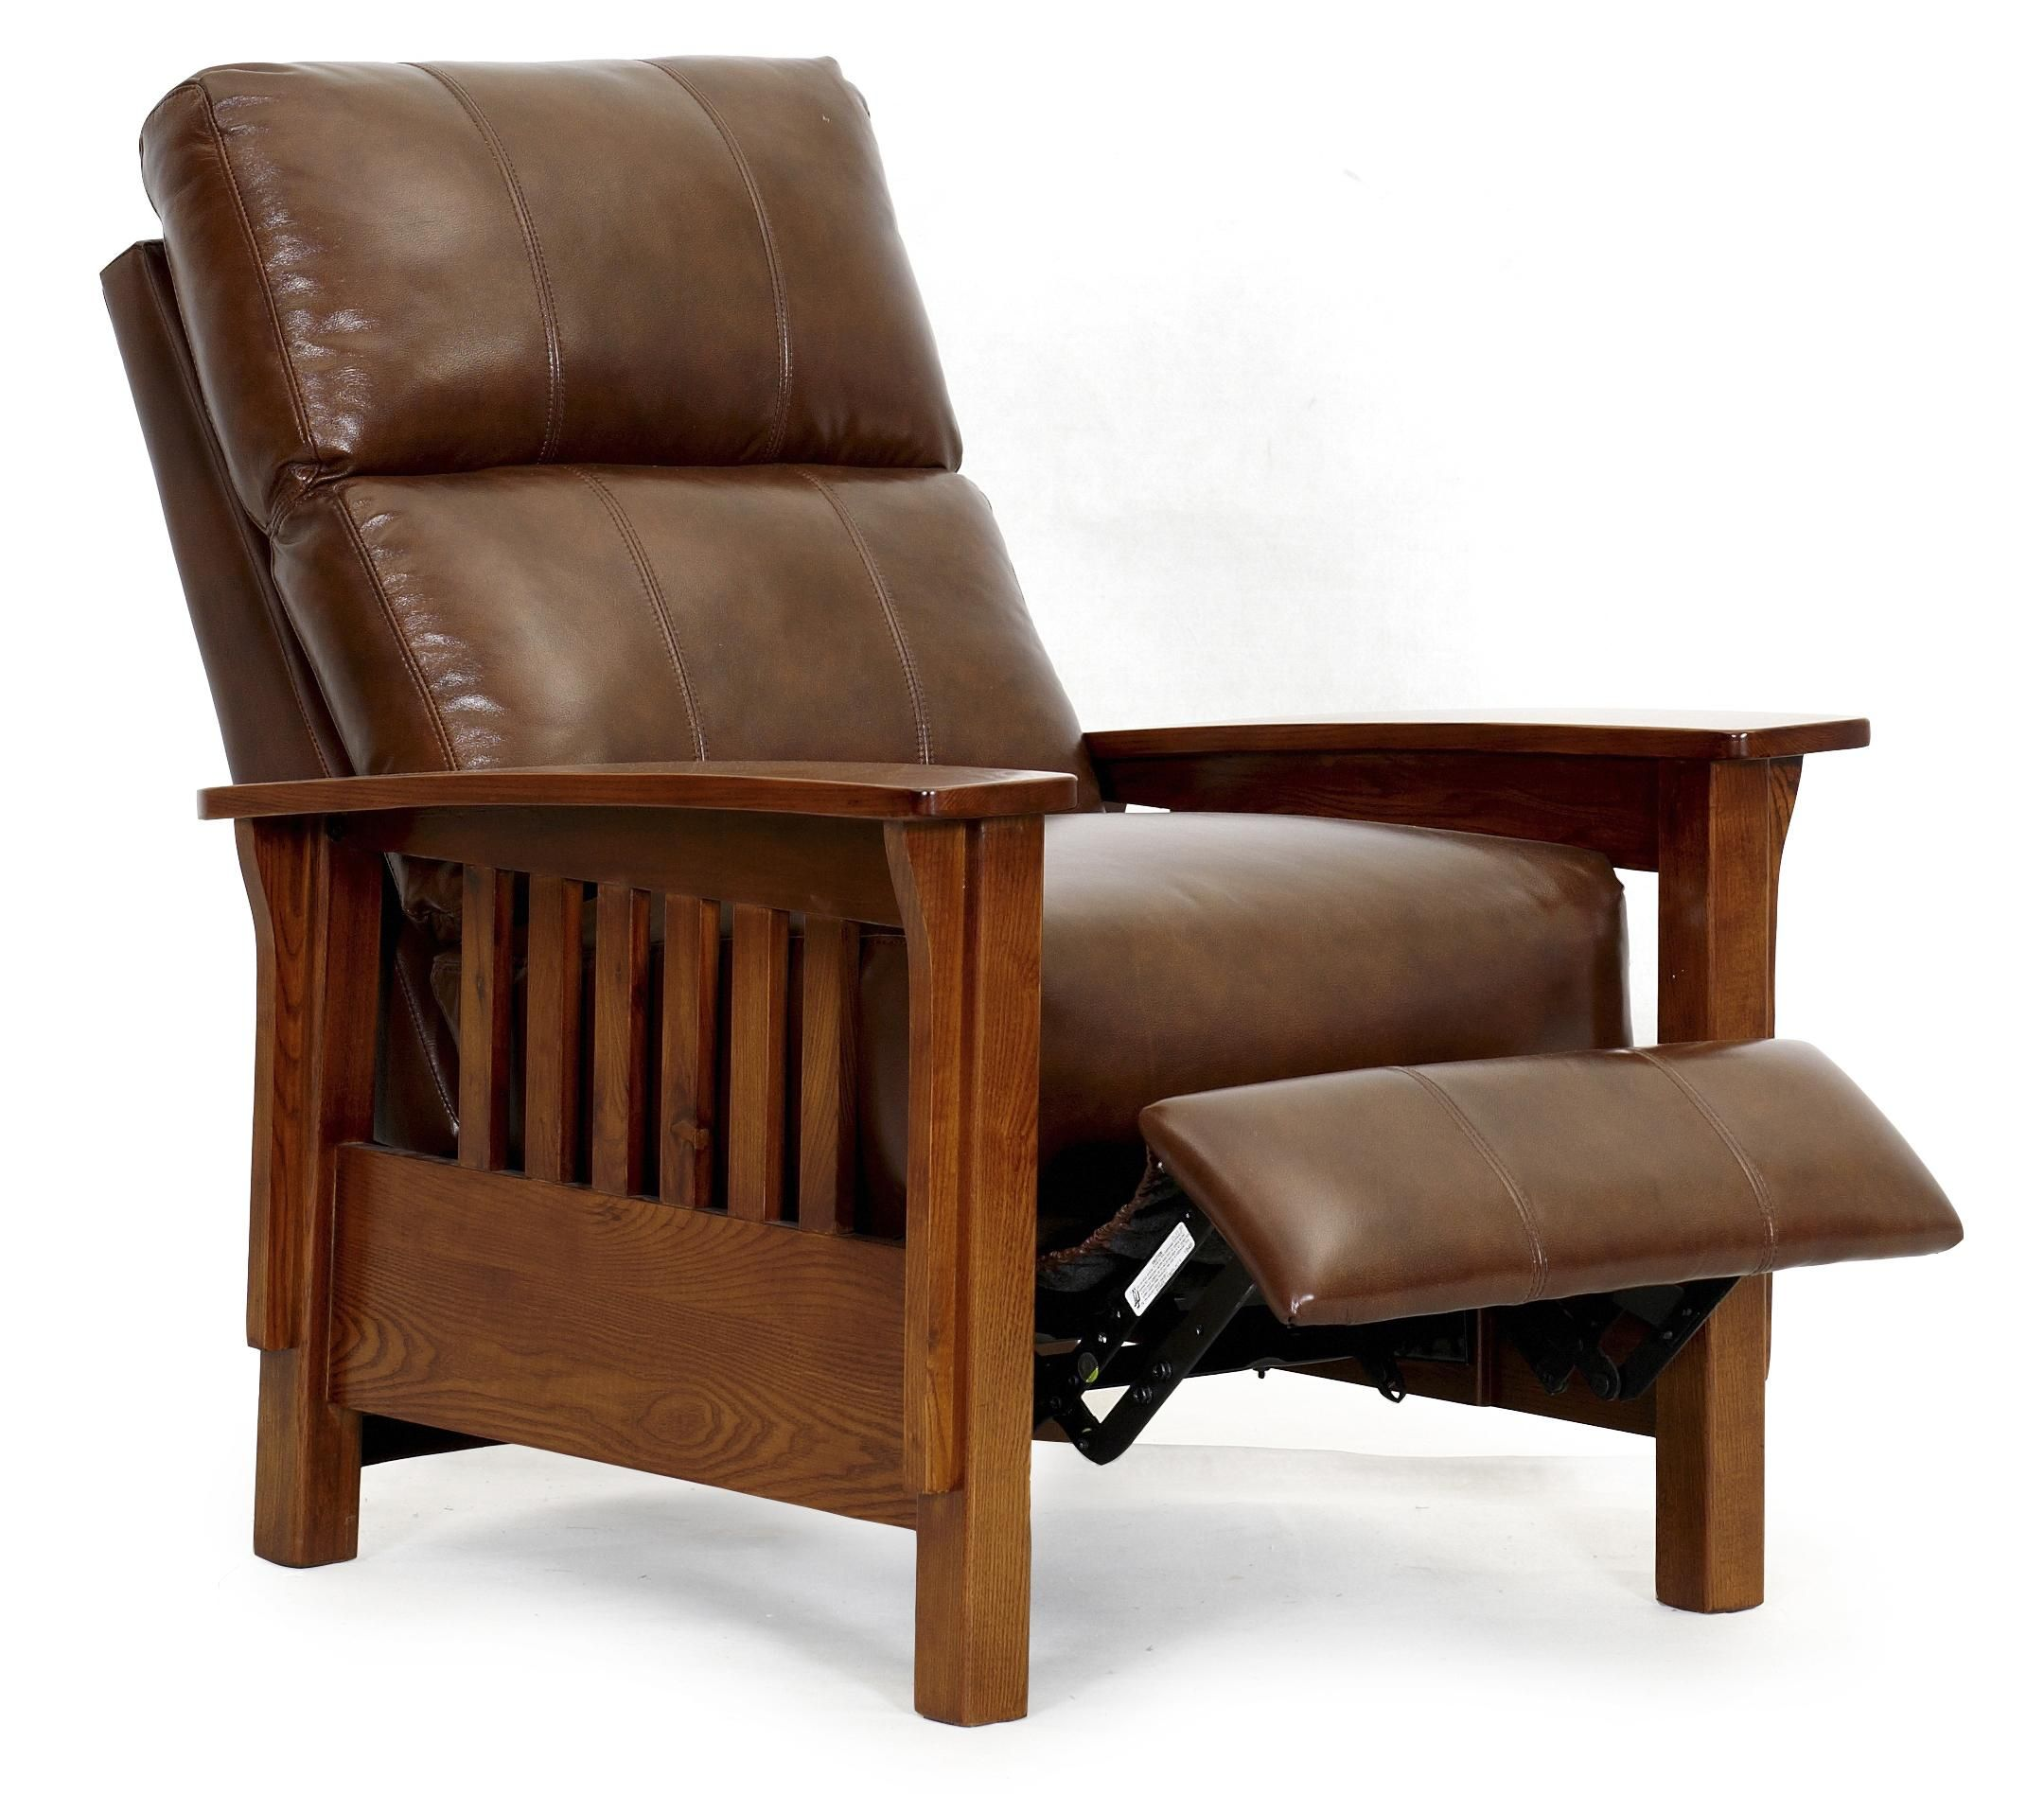 601 Three Way Recliner by Synergy Home Furnishings